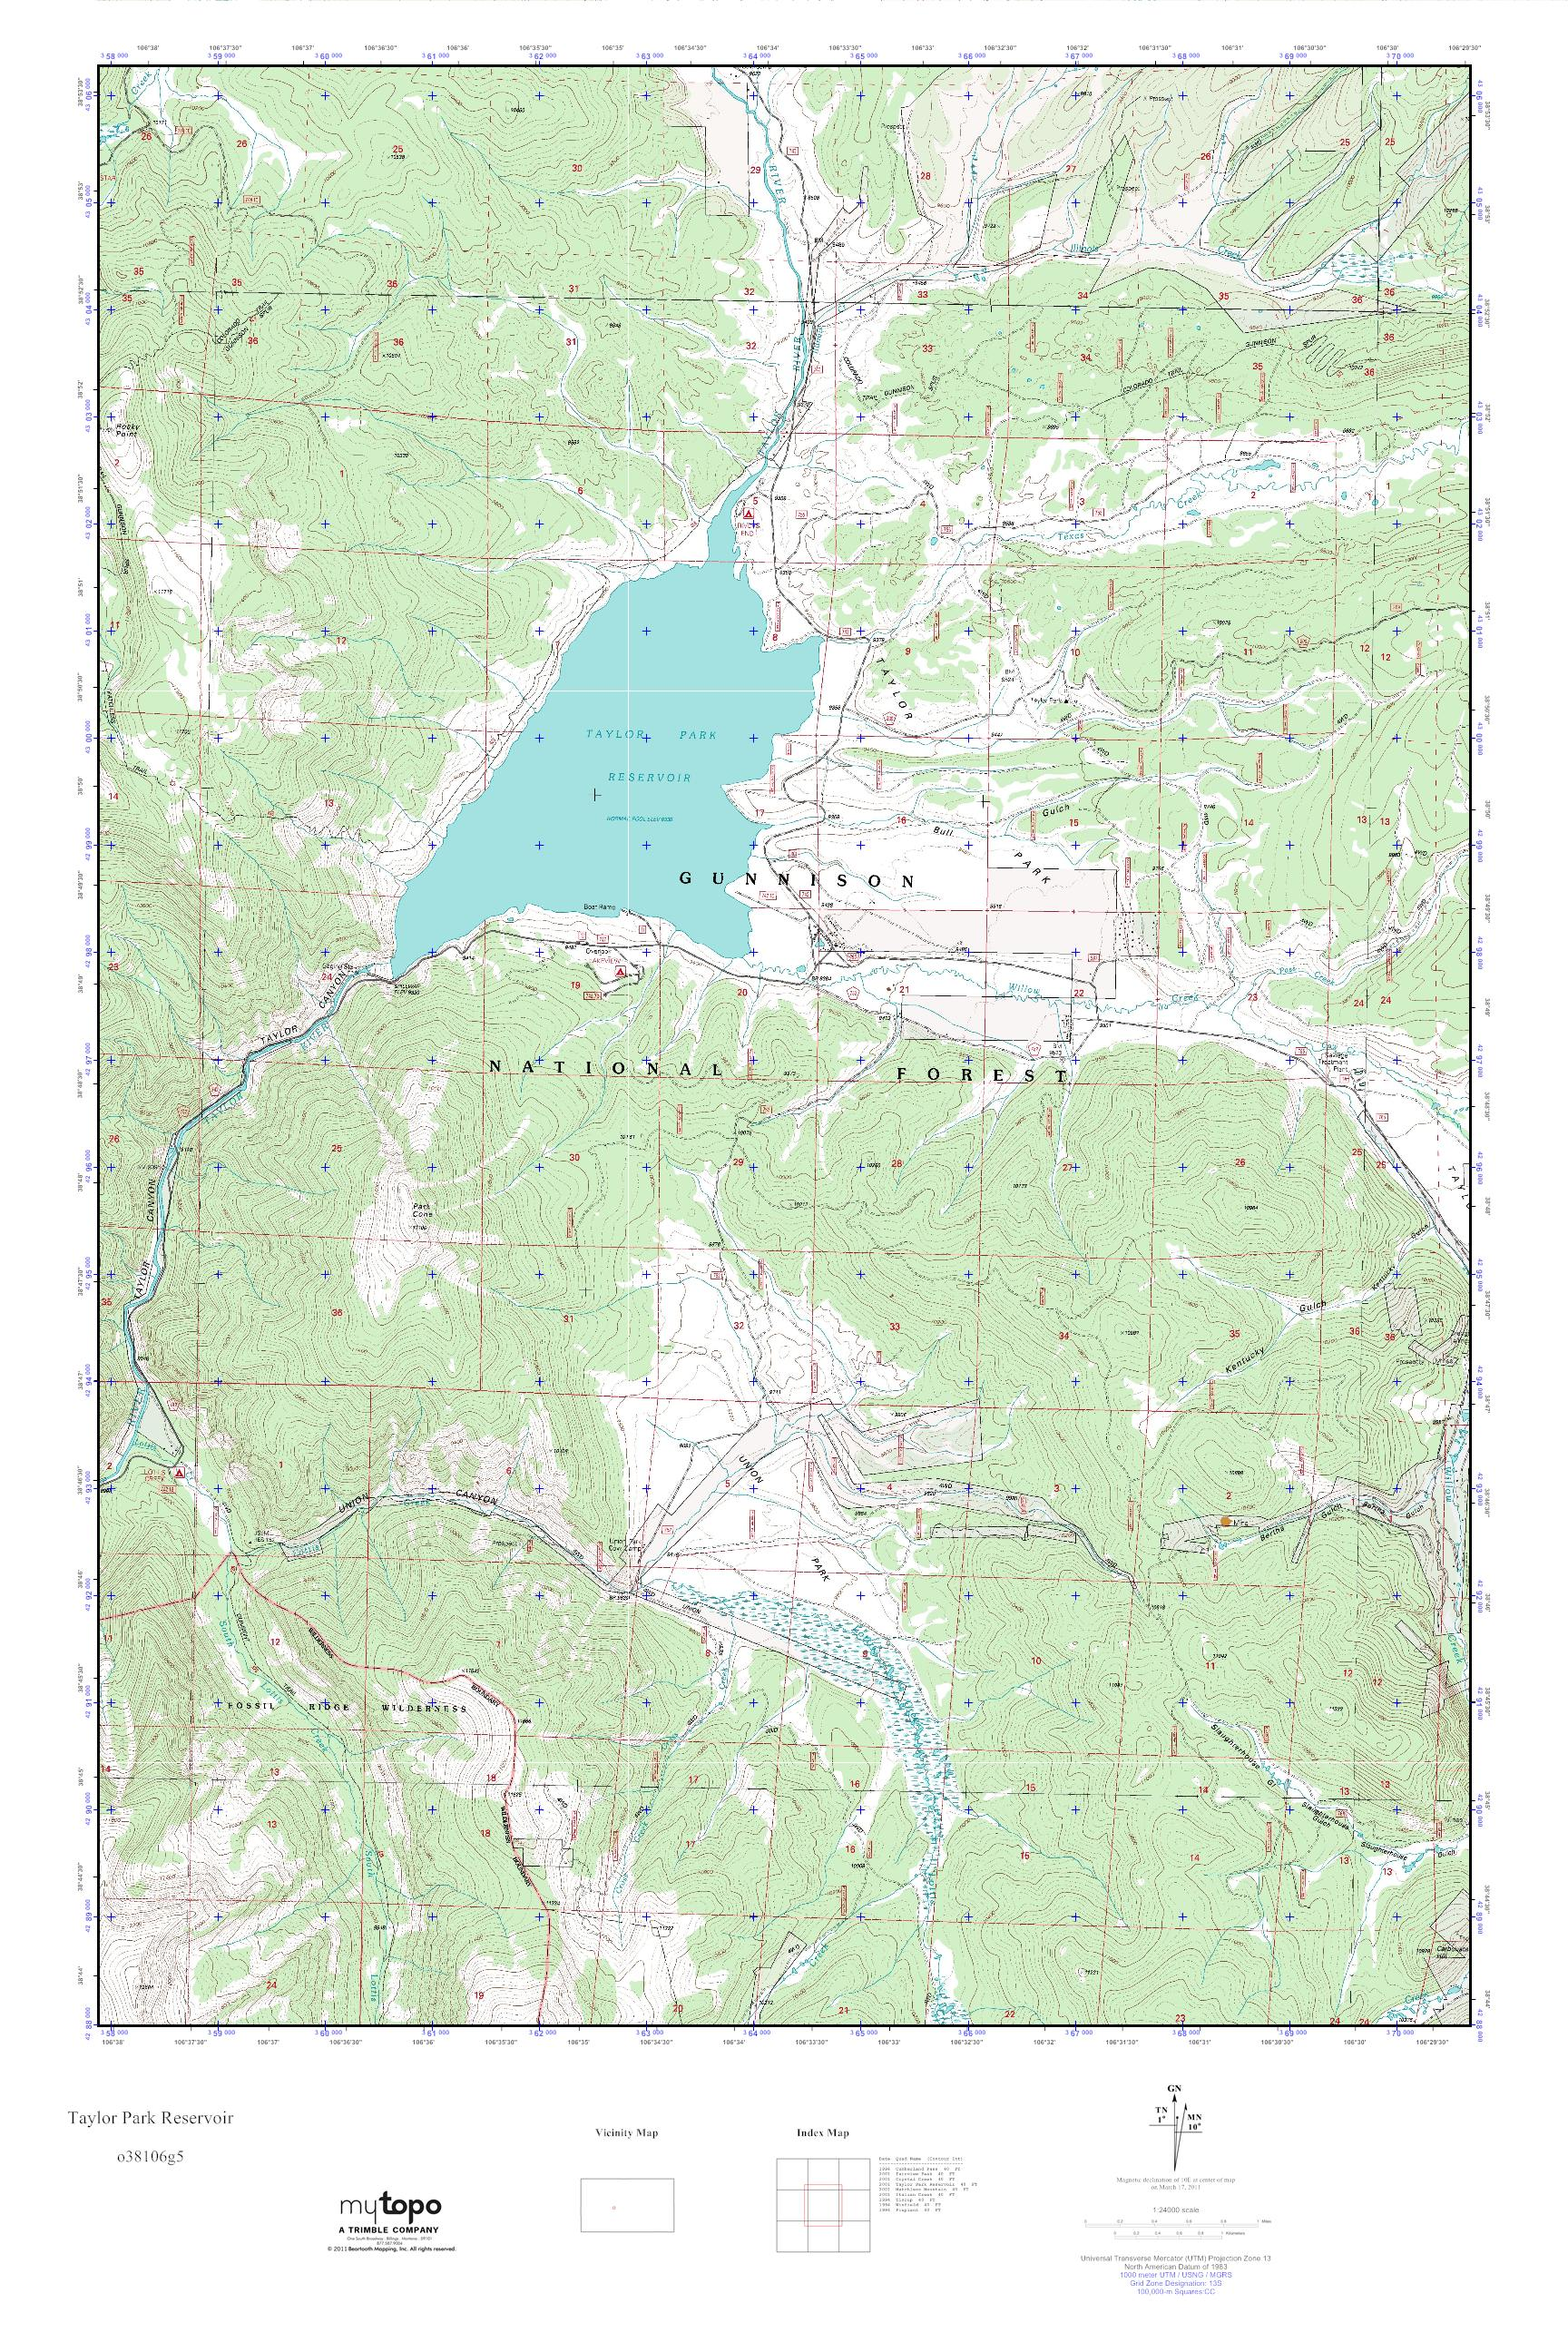 Taylor Park Colorado Map.Mytopo Taylor Park Reservoir Colorado Usgs Quad Topo Map